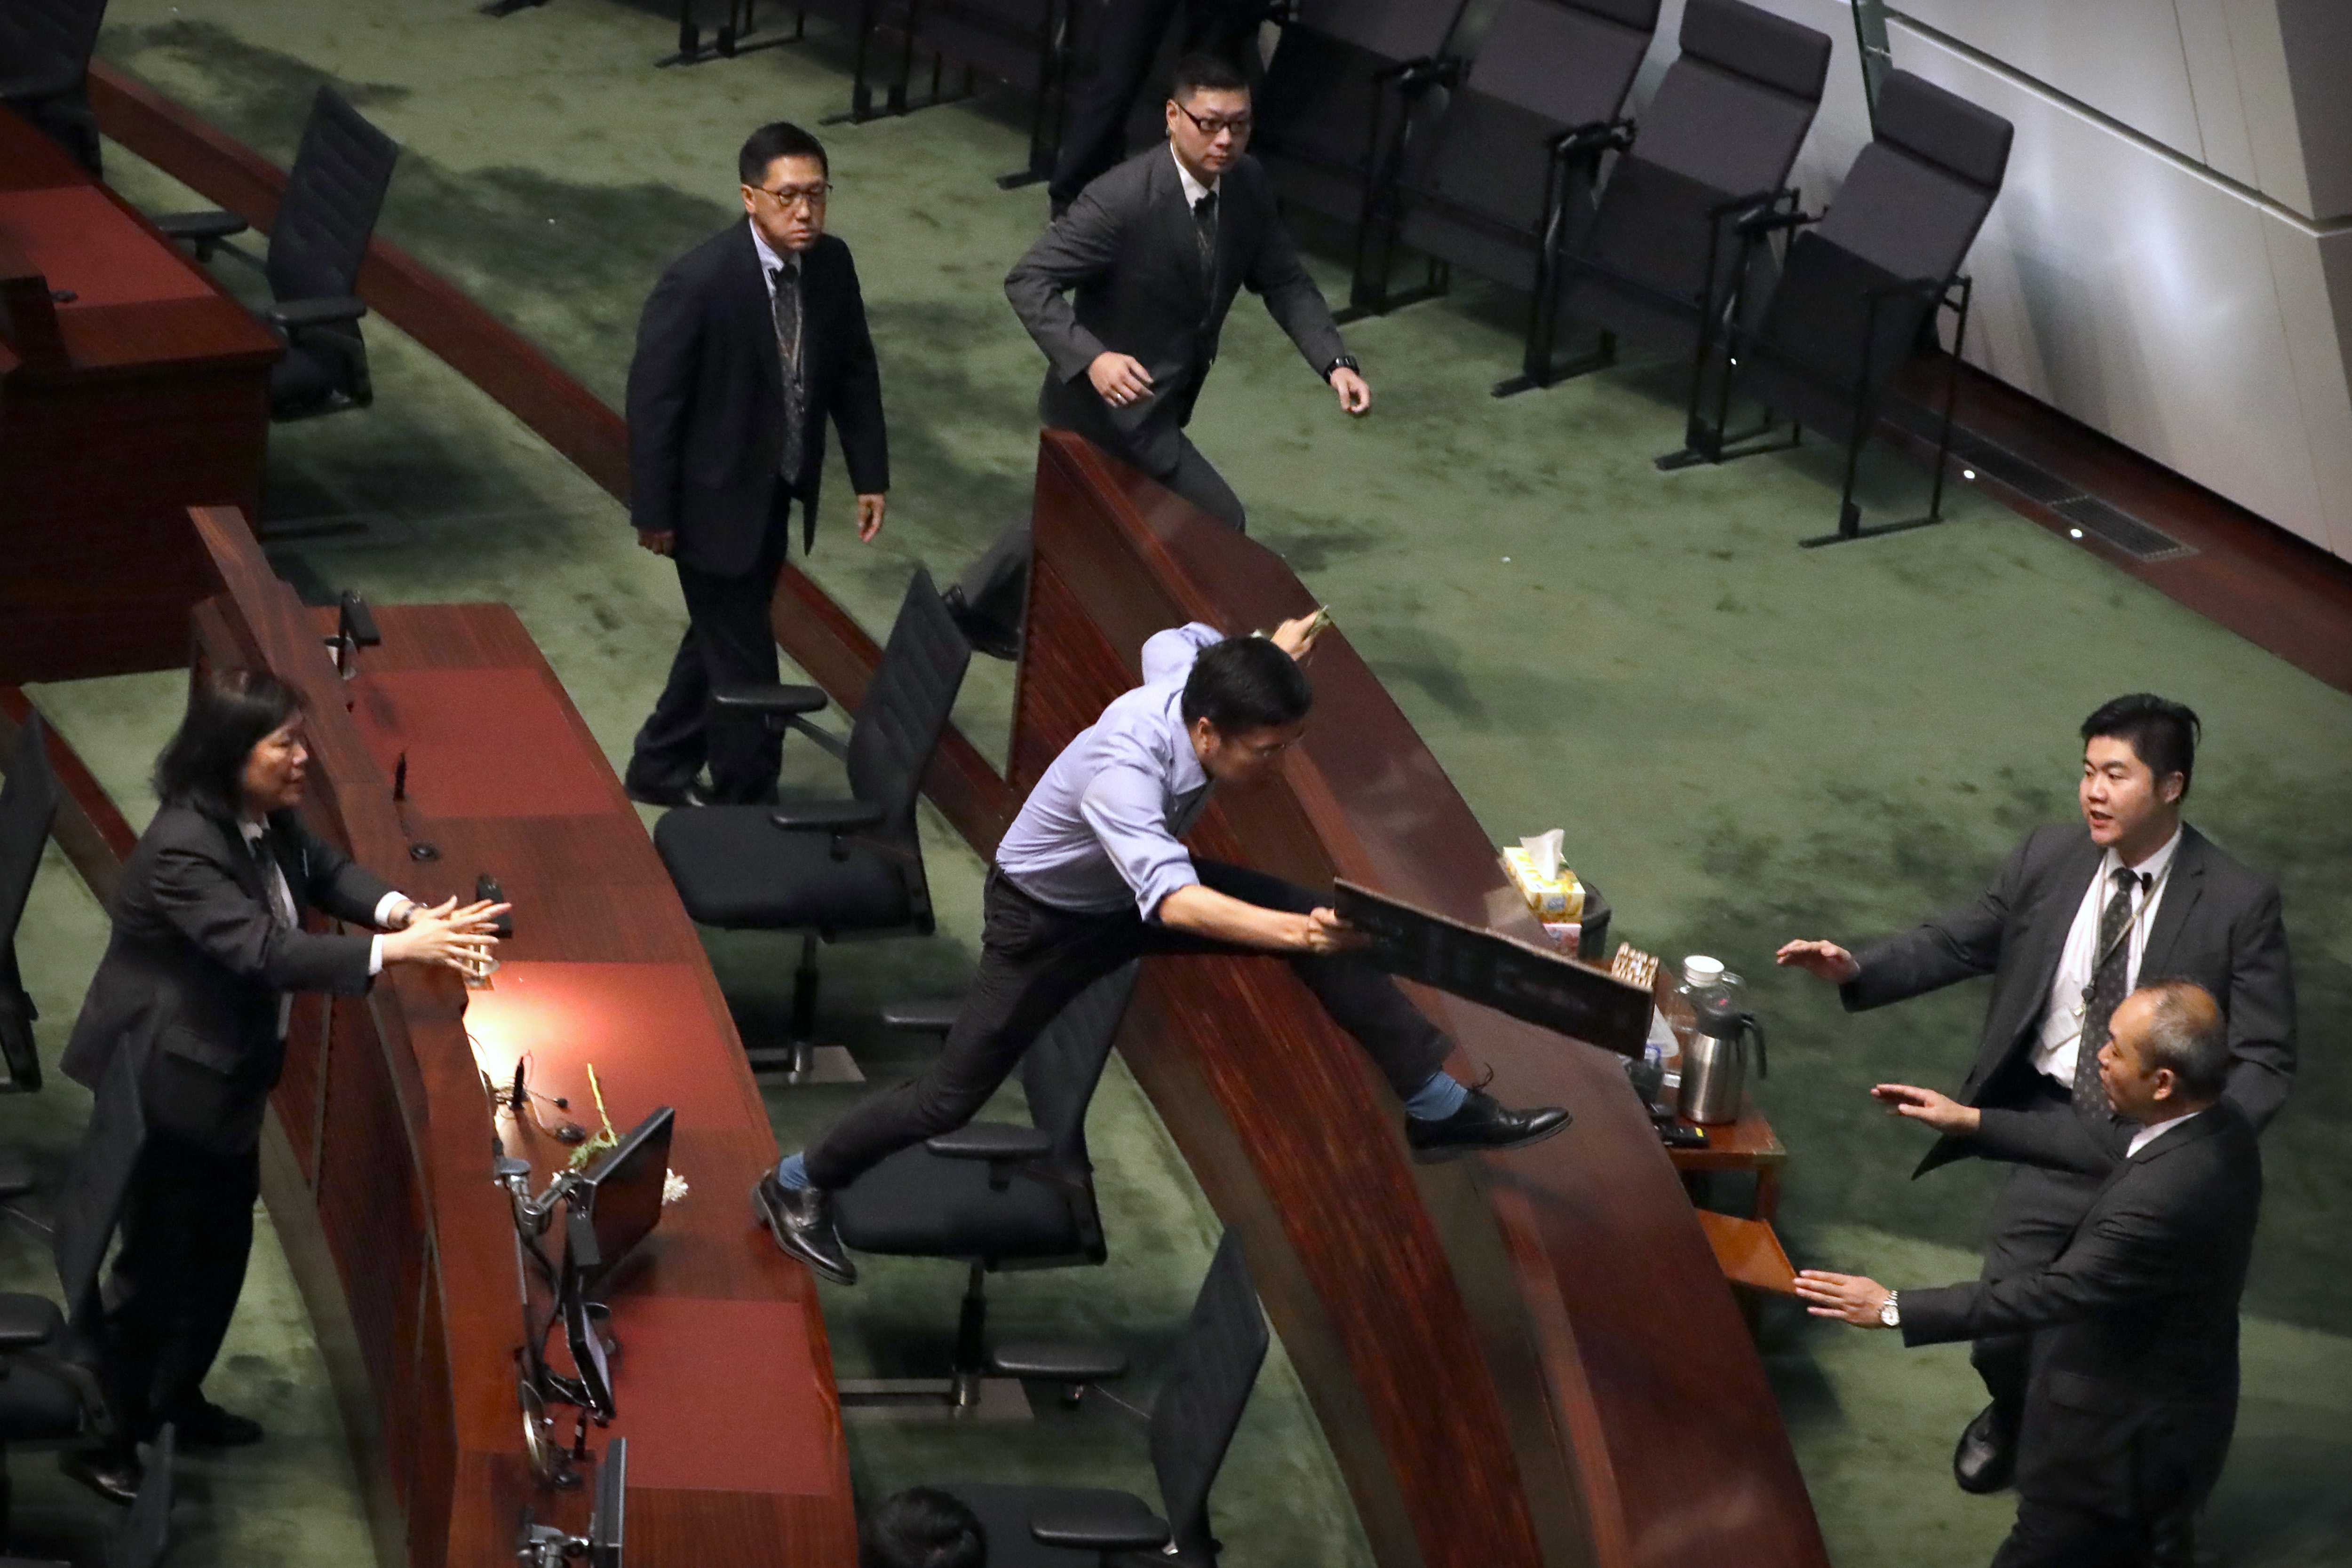 Security officers pursue Au Nok-hin, center, as he leaps across desks to chase Carrie Lam as Lam leaves a QandA session with lawmakers at the Legislative Council in Hong Kong on October 17, 2019